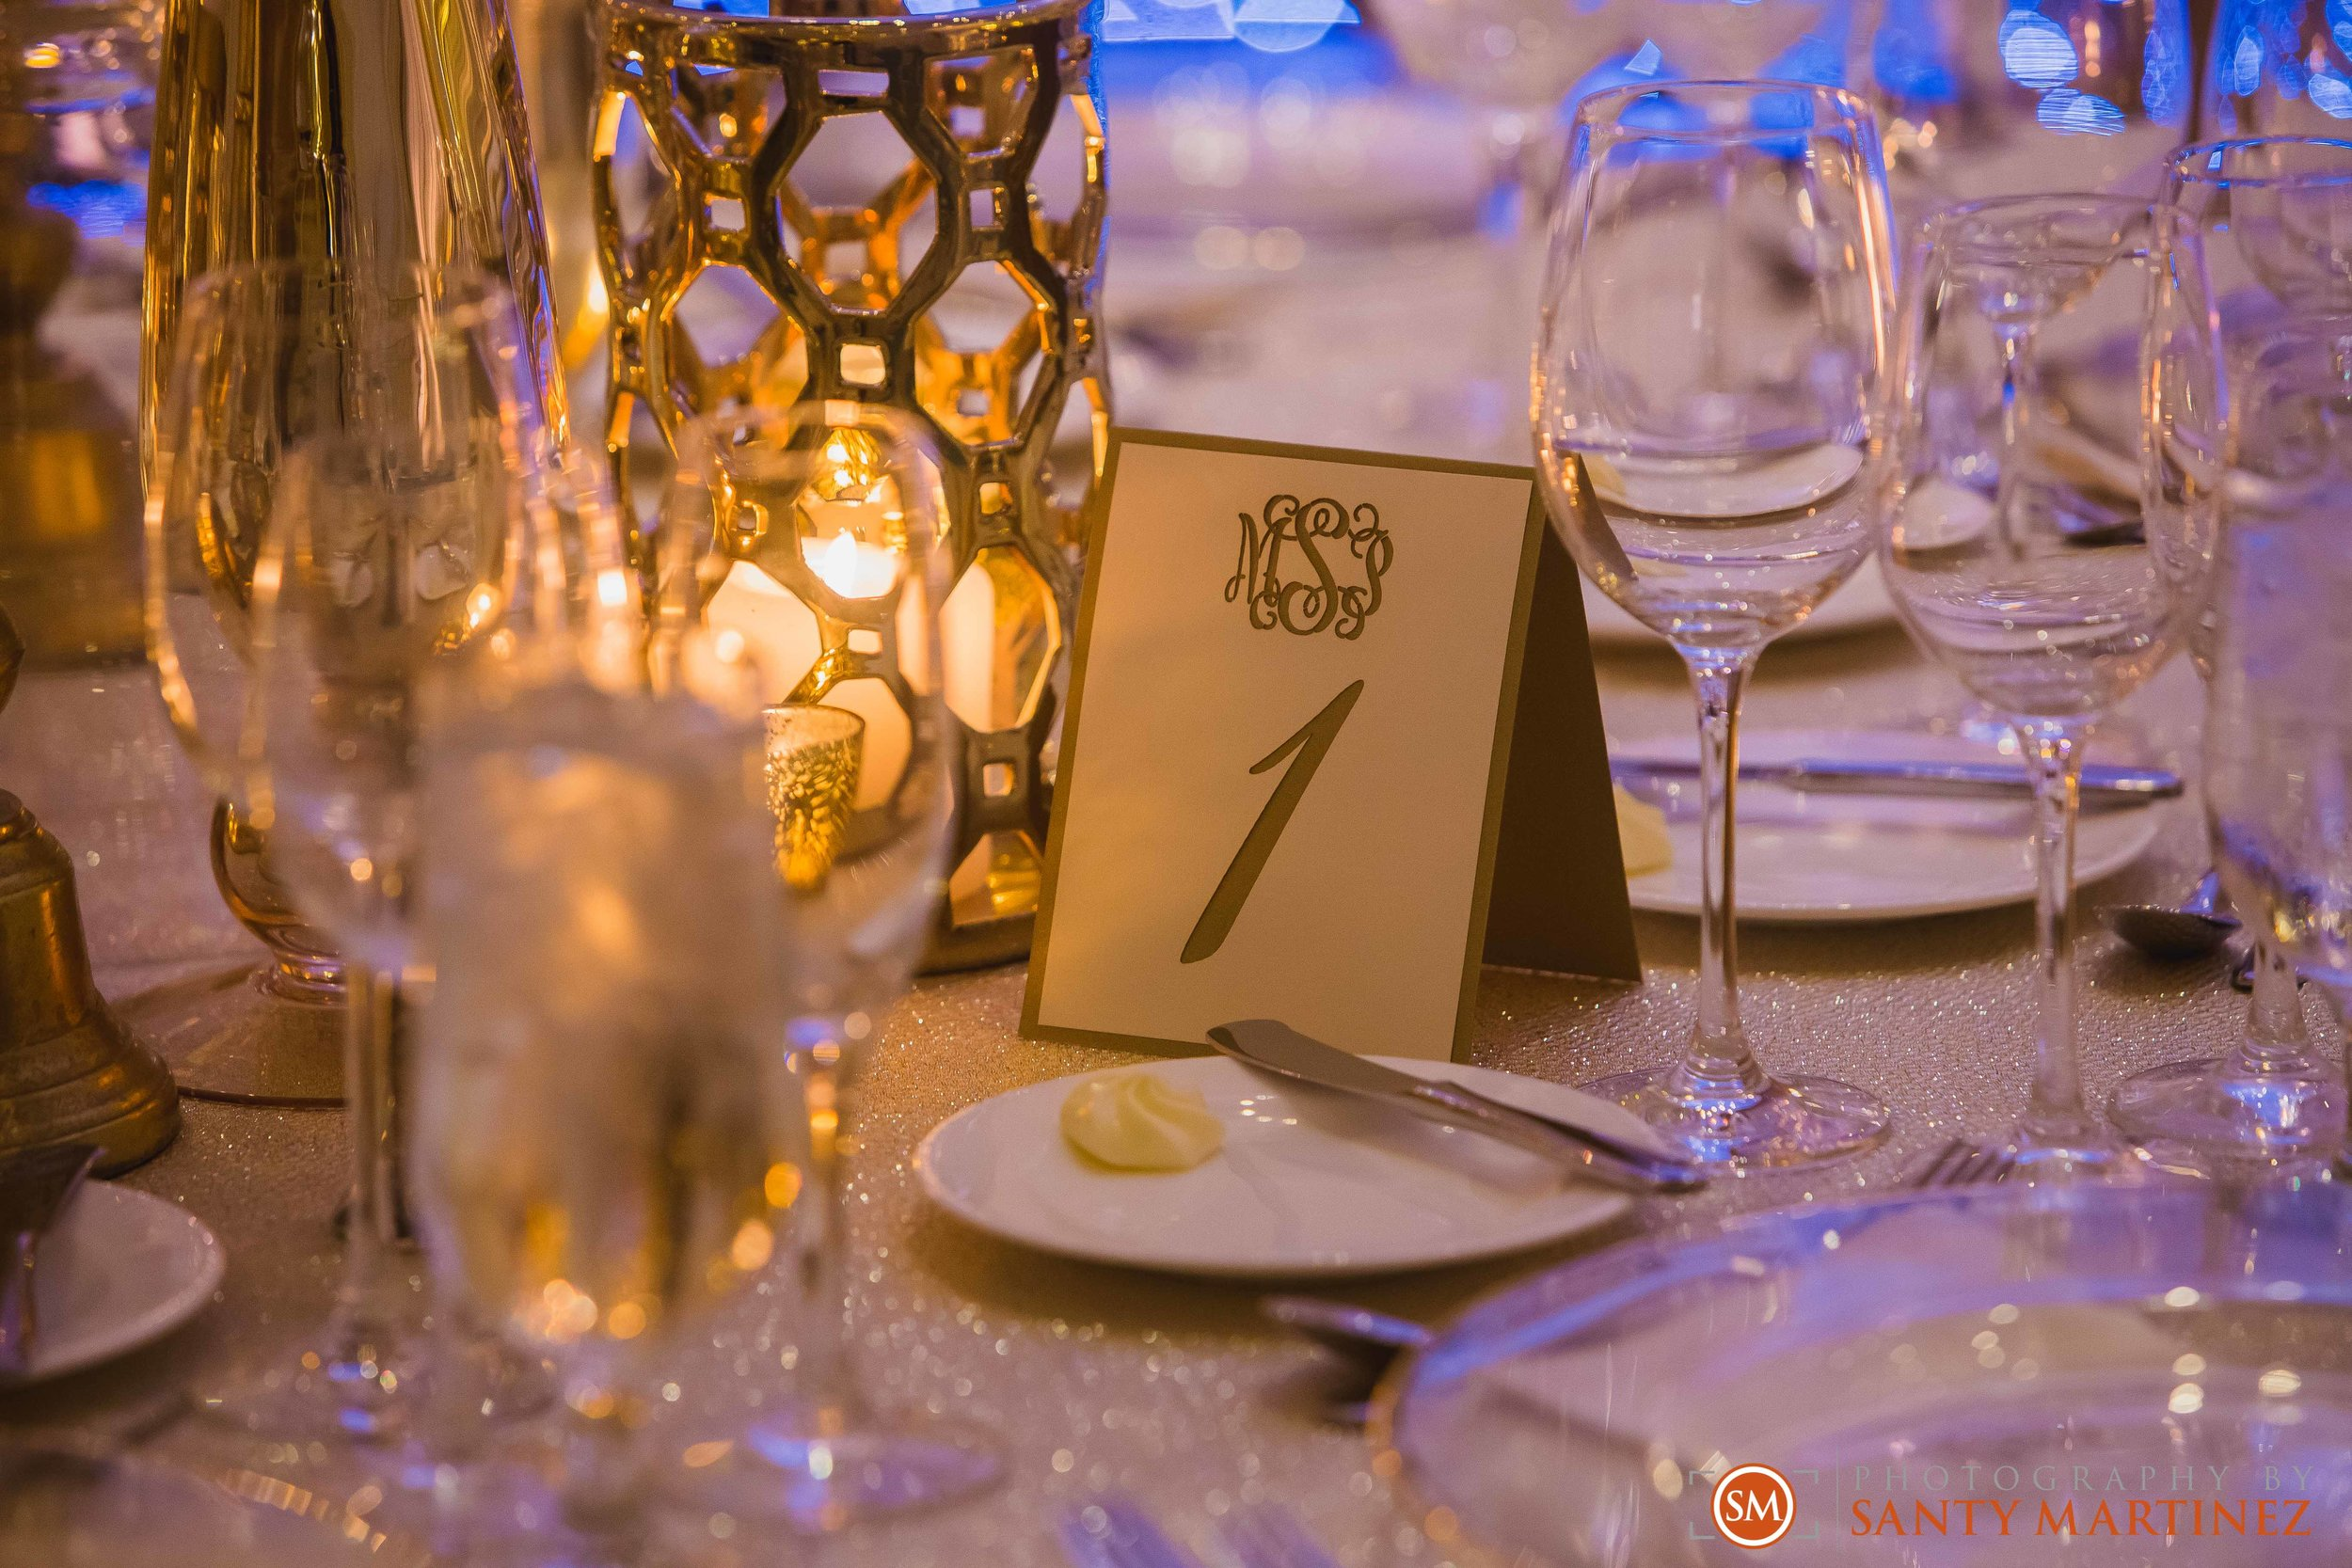 Wedding Ritz Carlton Coconut Grove - Santy Martinez-32.jpg